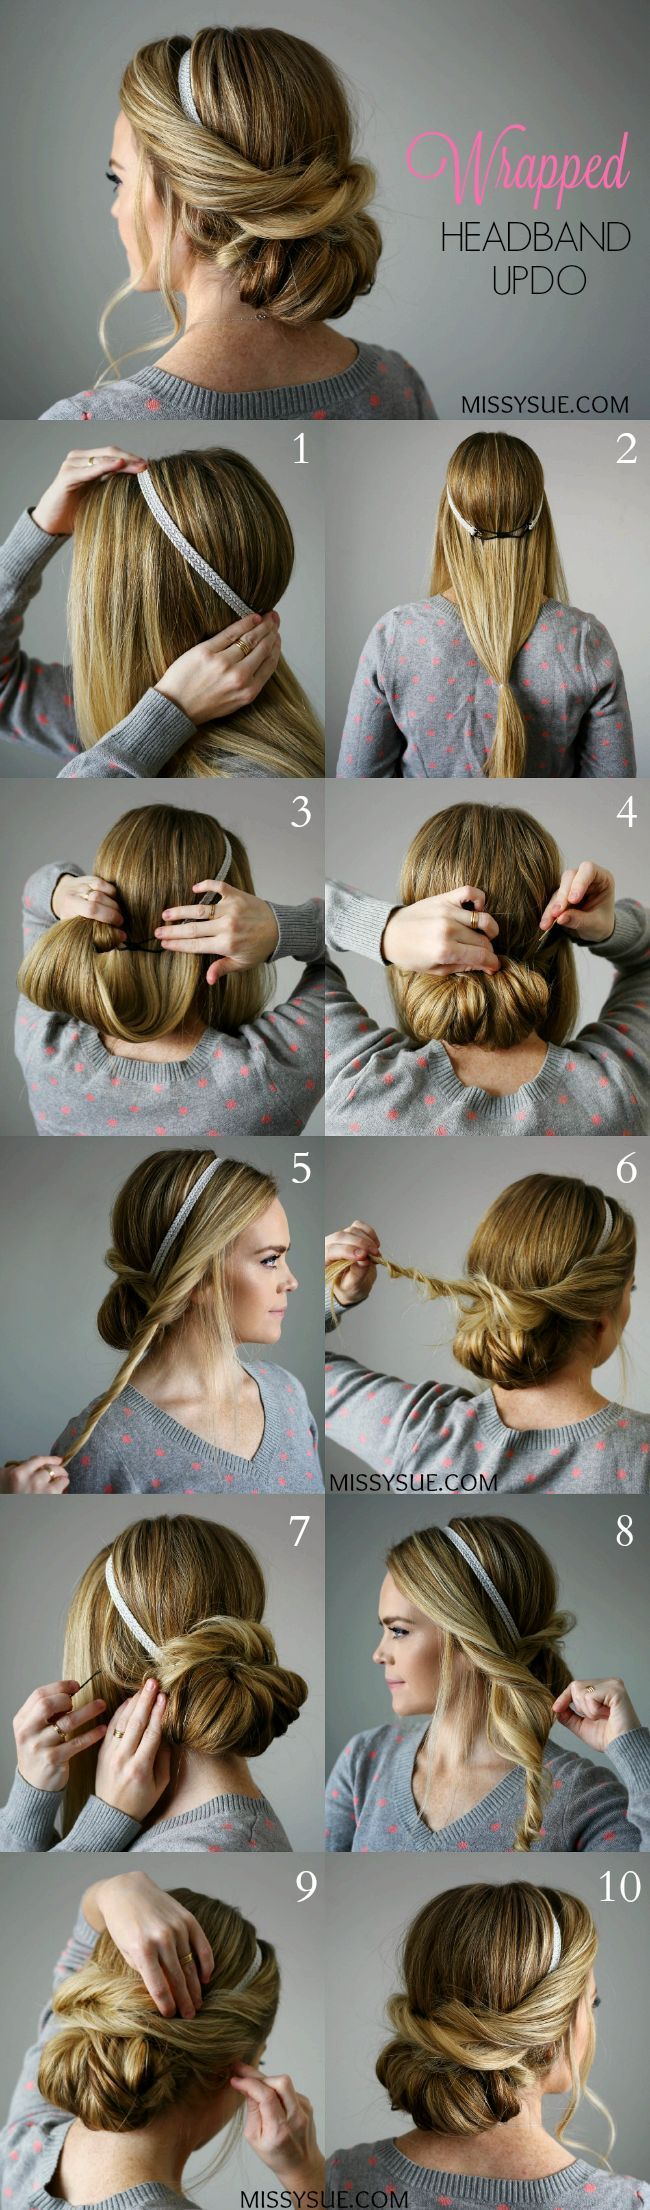 awesome 25 Step By Step Tutorial For Beautiful Hair Updos ❤ - Page 2 of 5 - Trend To Wear by http://www.danazhaircuts.xyz/hair-tutorials/25-step-by-step-tutorial-for-beautiful-hair-updos-%e2%9d%a4-page-2-of-5-trend-to-wear/